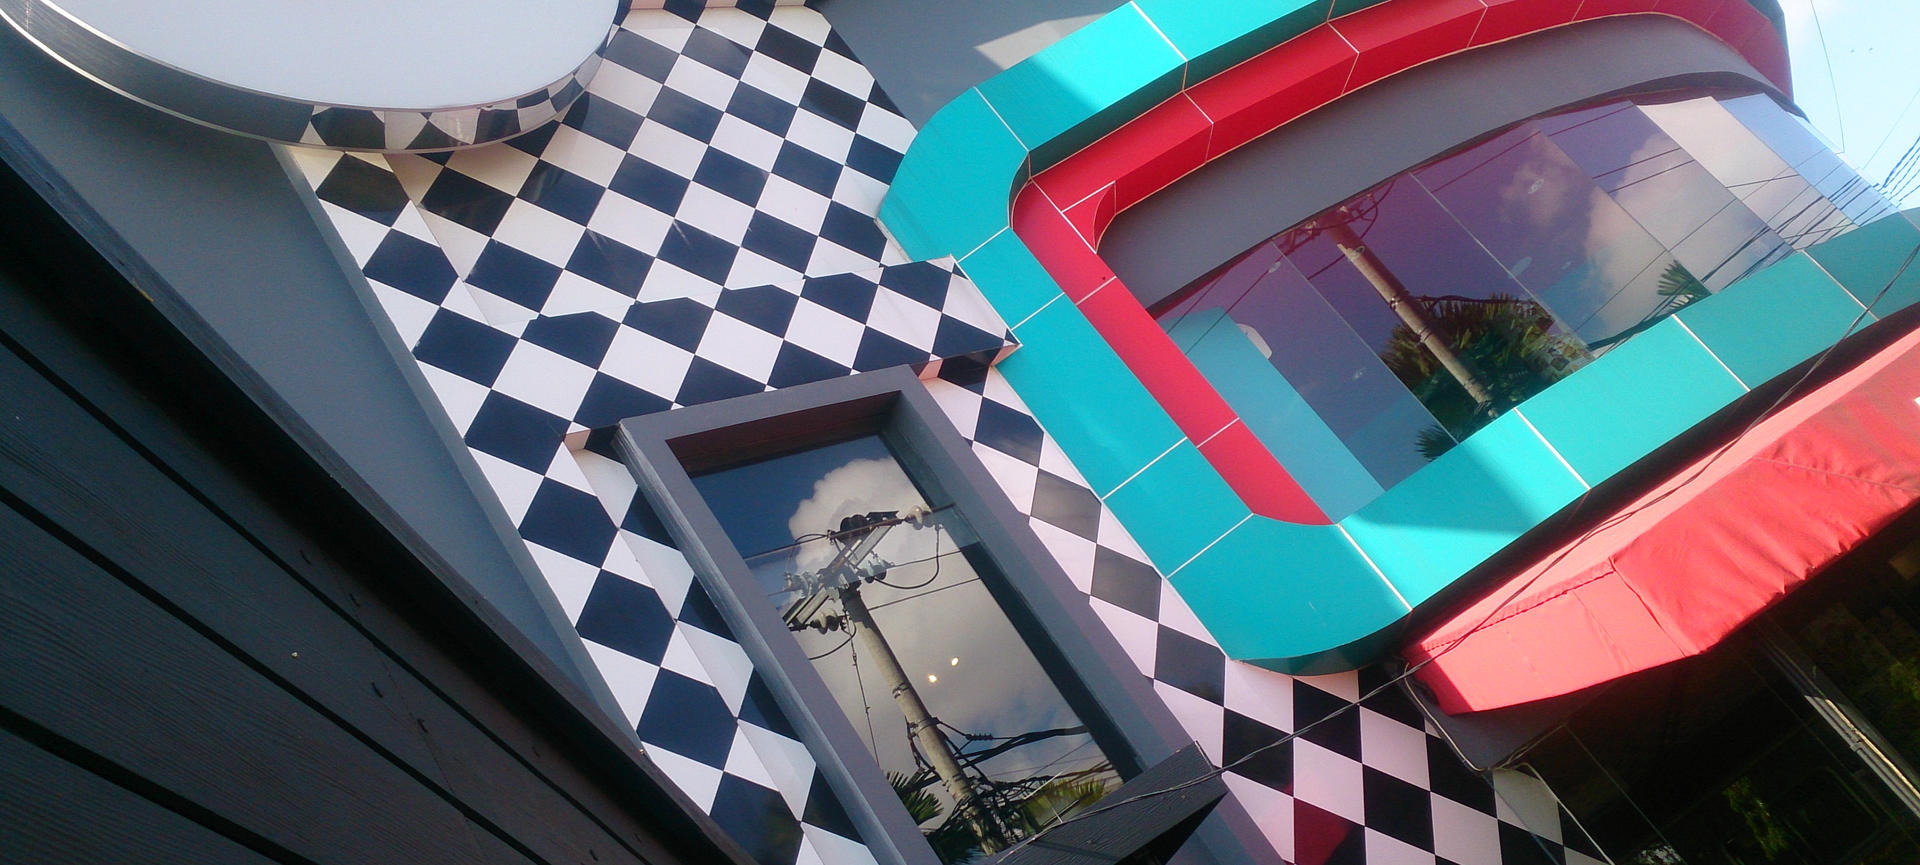 Cosmic Diner: Downtown American Themed Dining In Coastal Bali